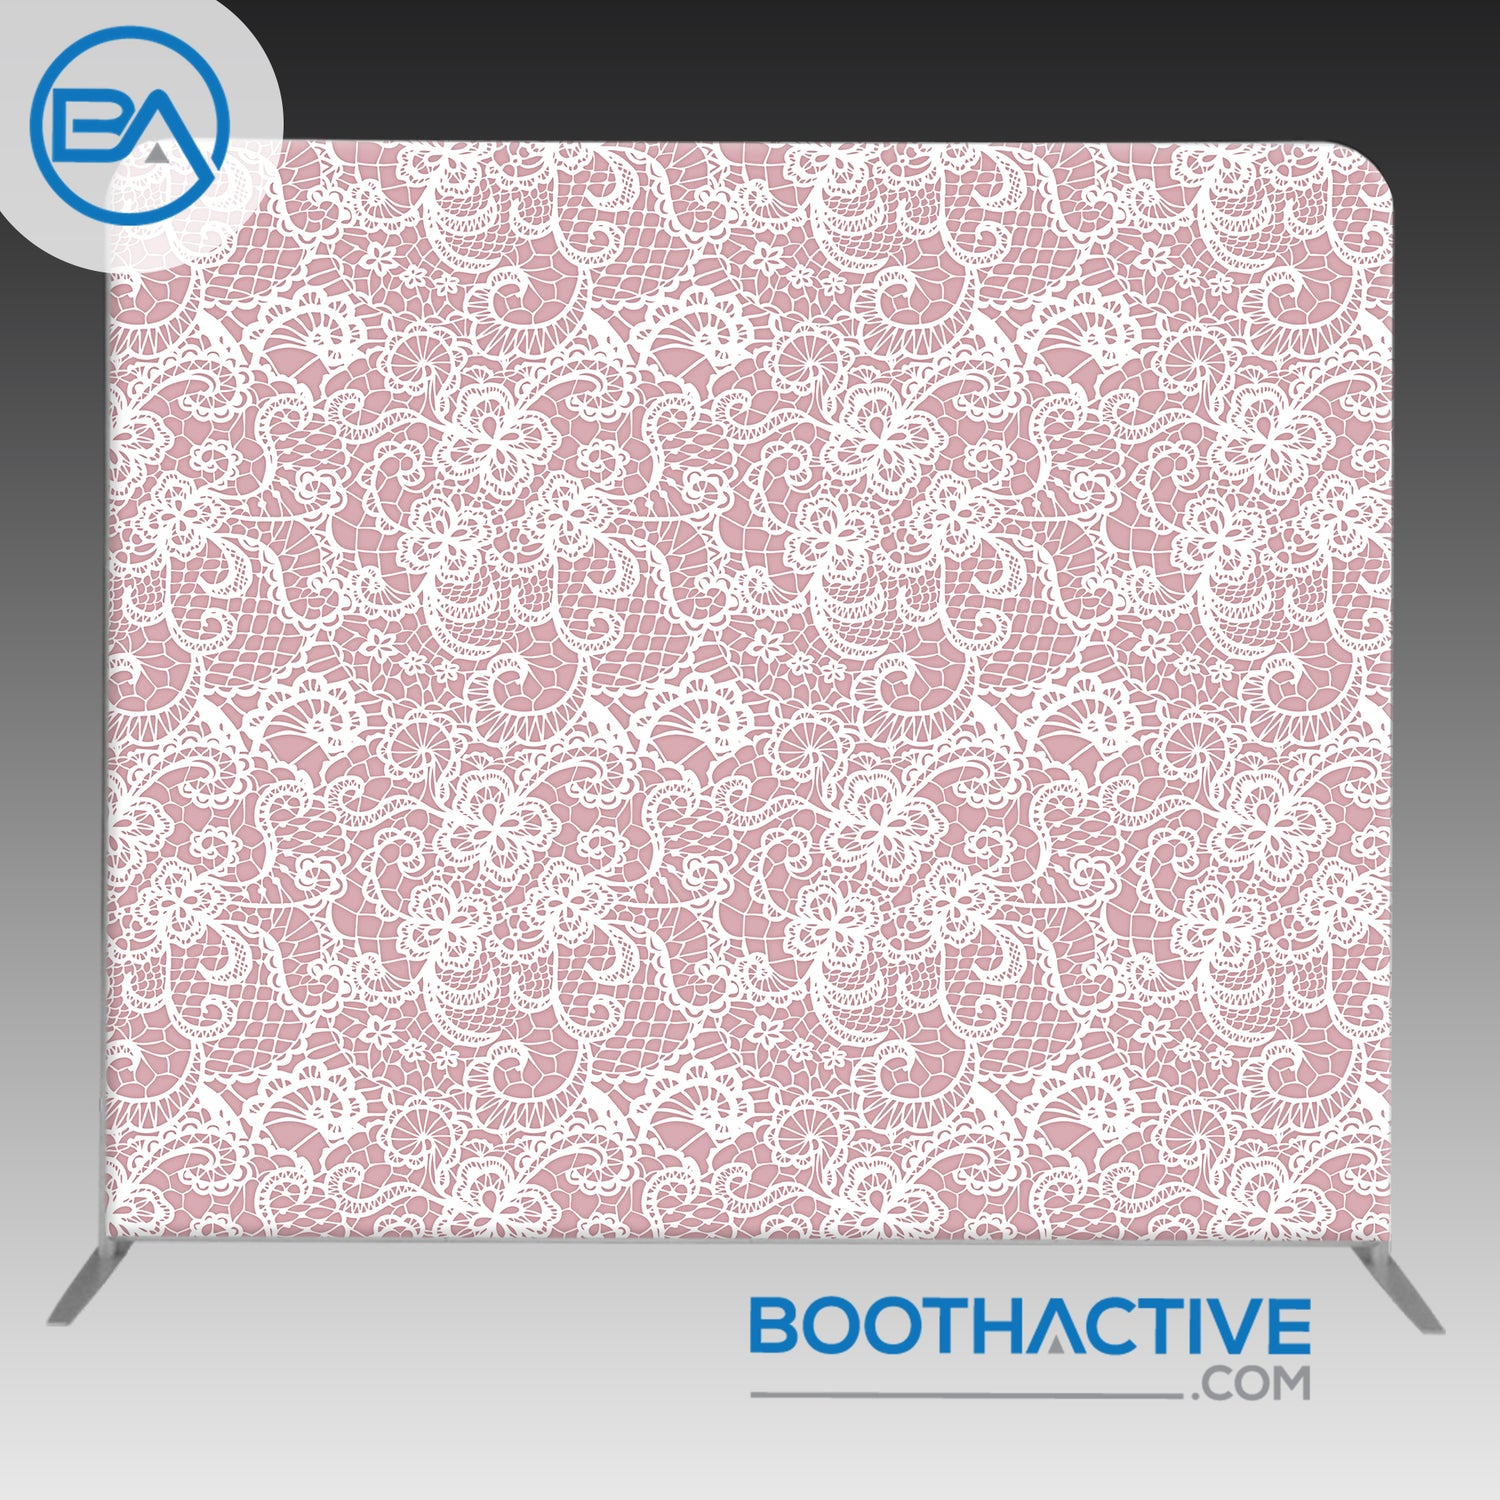 8' x 8' Backdrop - Lace - BoothActive